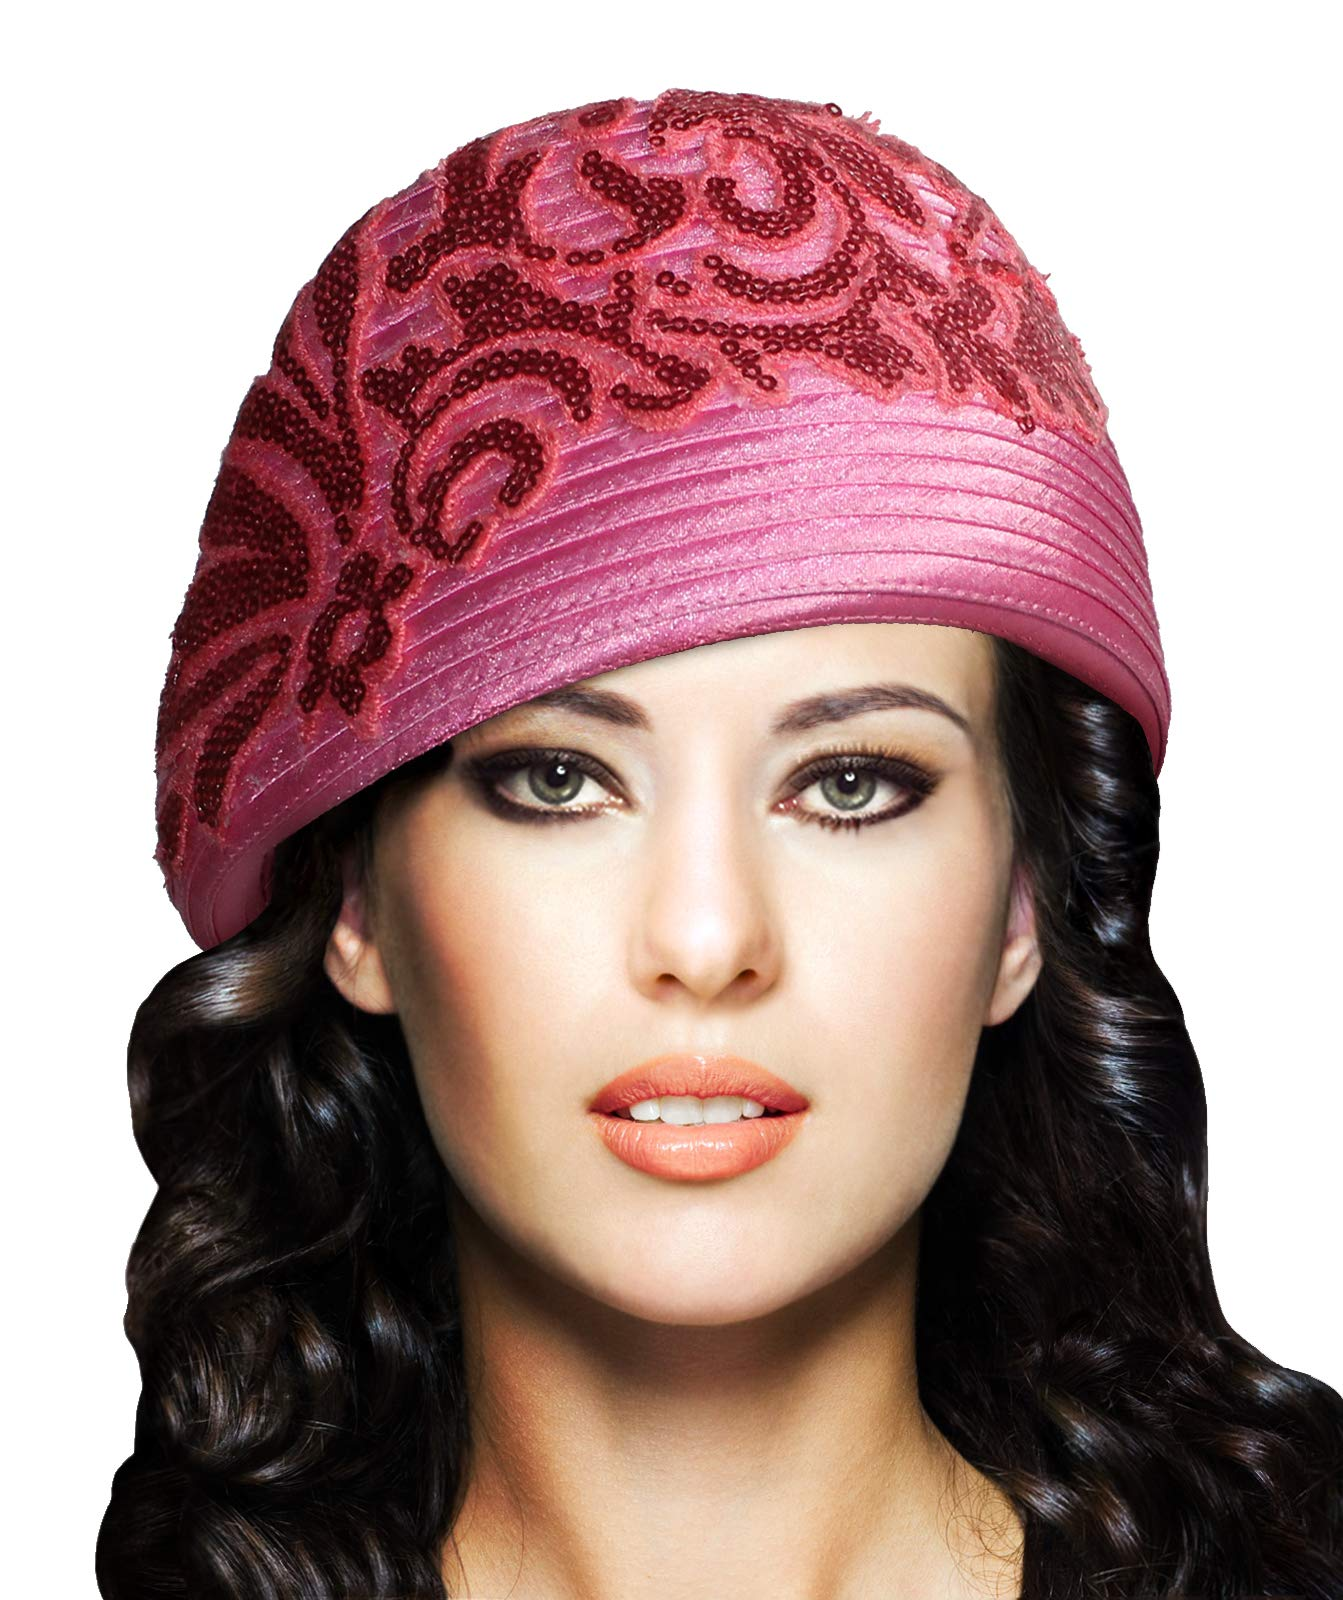 Mr. Song Millinery Beret Cloche Hat with Premium Lace - Q62 (Rose)